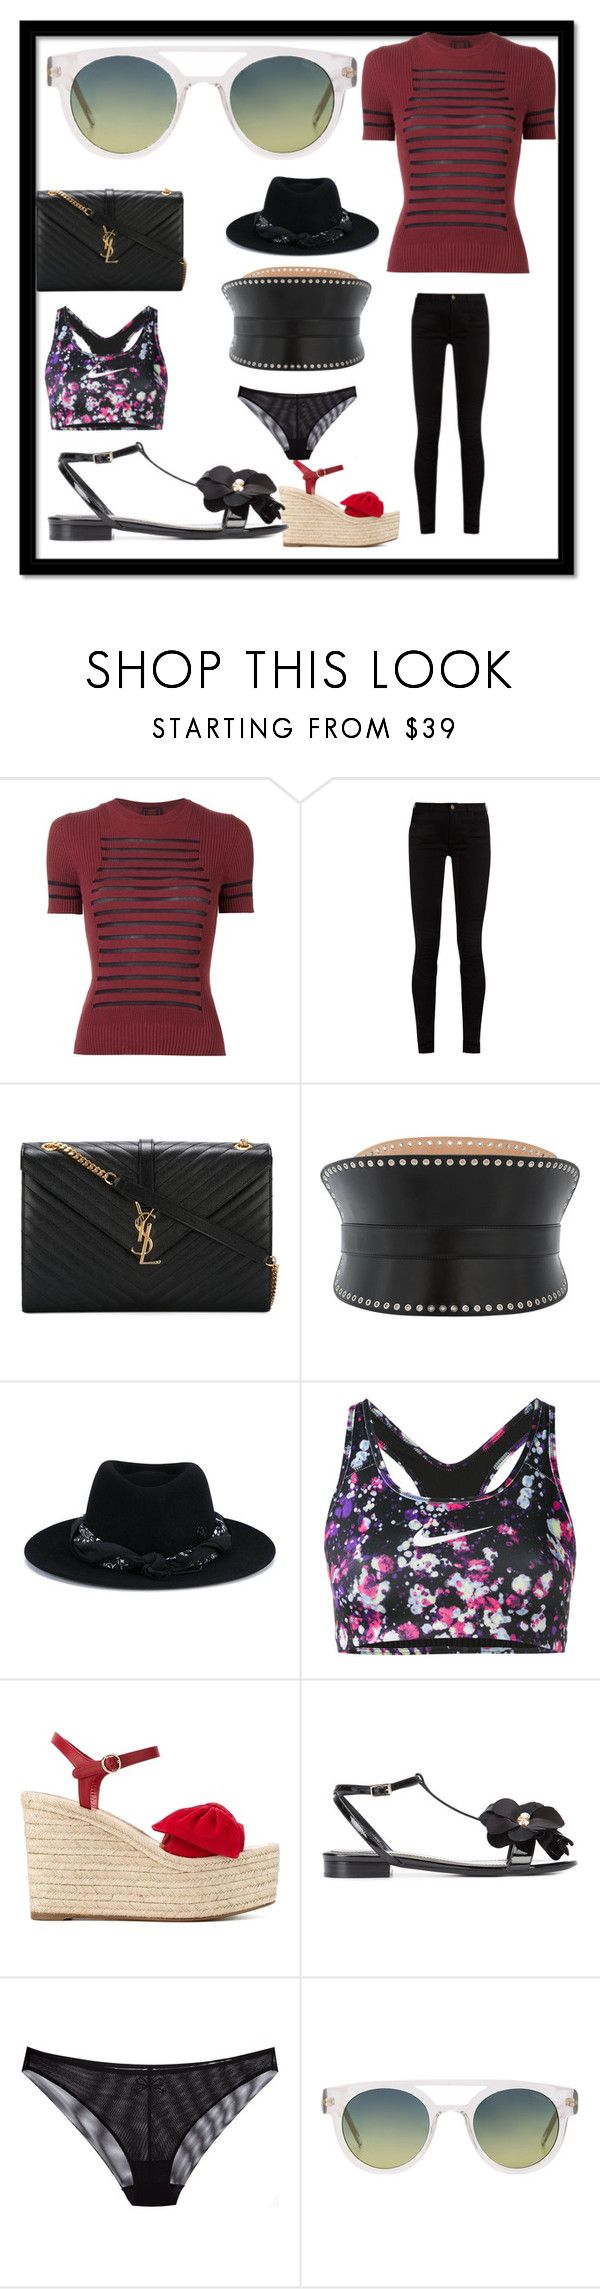 """COOL PARTY"" by justinallison on Polyvore featuring Jean-Paul Gaultier, Gucci, Yves Saint Laurent, Alexander McQueen, Maison Michel, NIKE, Valentino, Lanvin, Chantal Thomass and Komono"